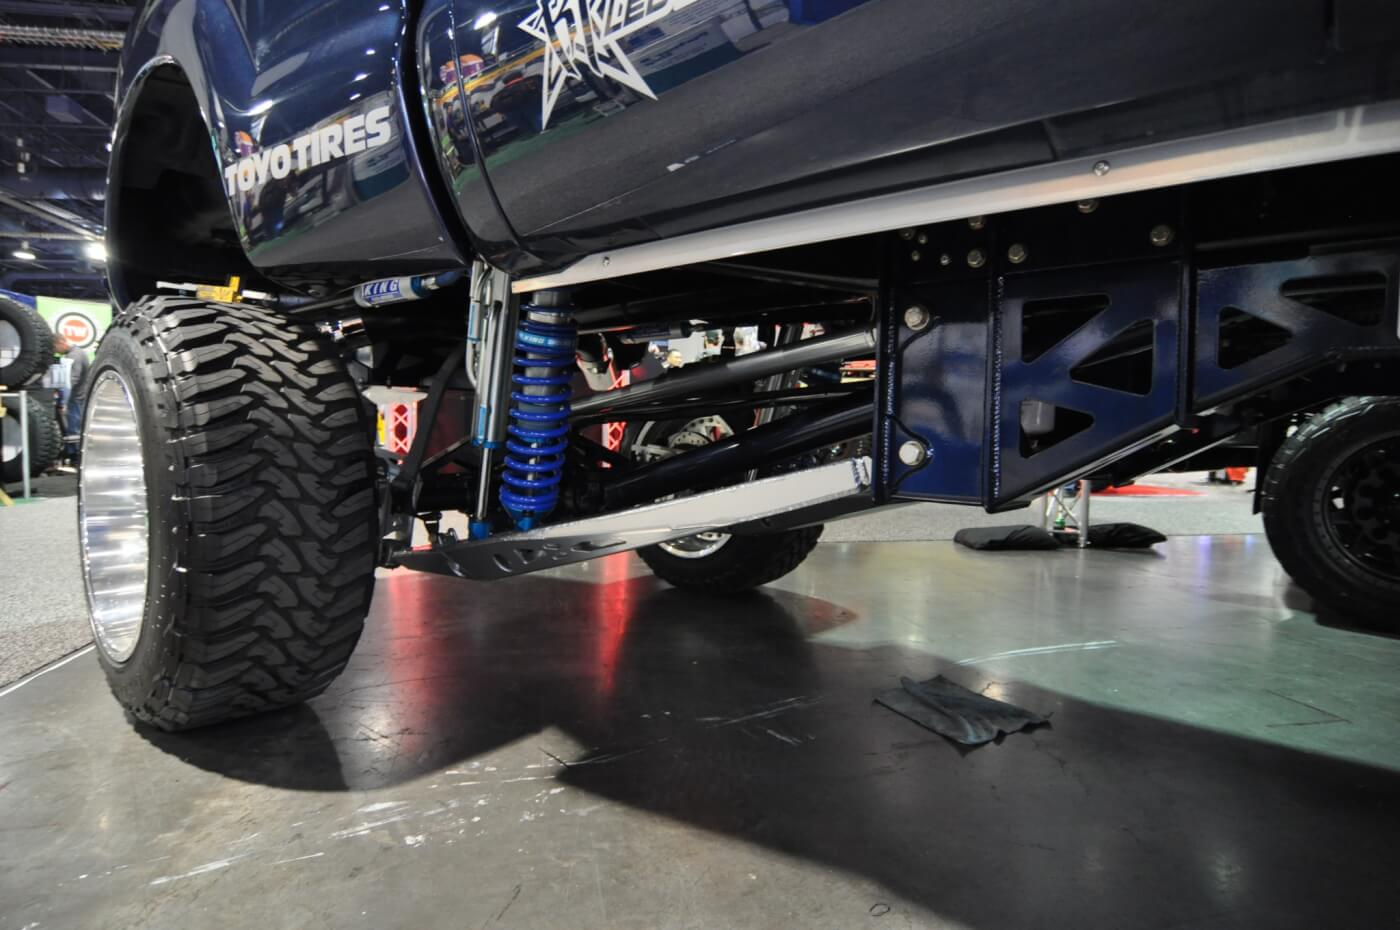 Allout Offroad Performance built one of, if not the cleanest and most well thought out Fords we saw all week. In terms of usability, and quality of mod's done, it's one we'd be extremely proud to drive every day.